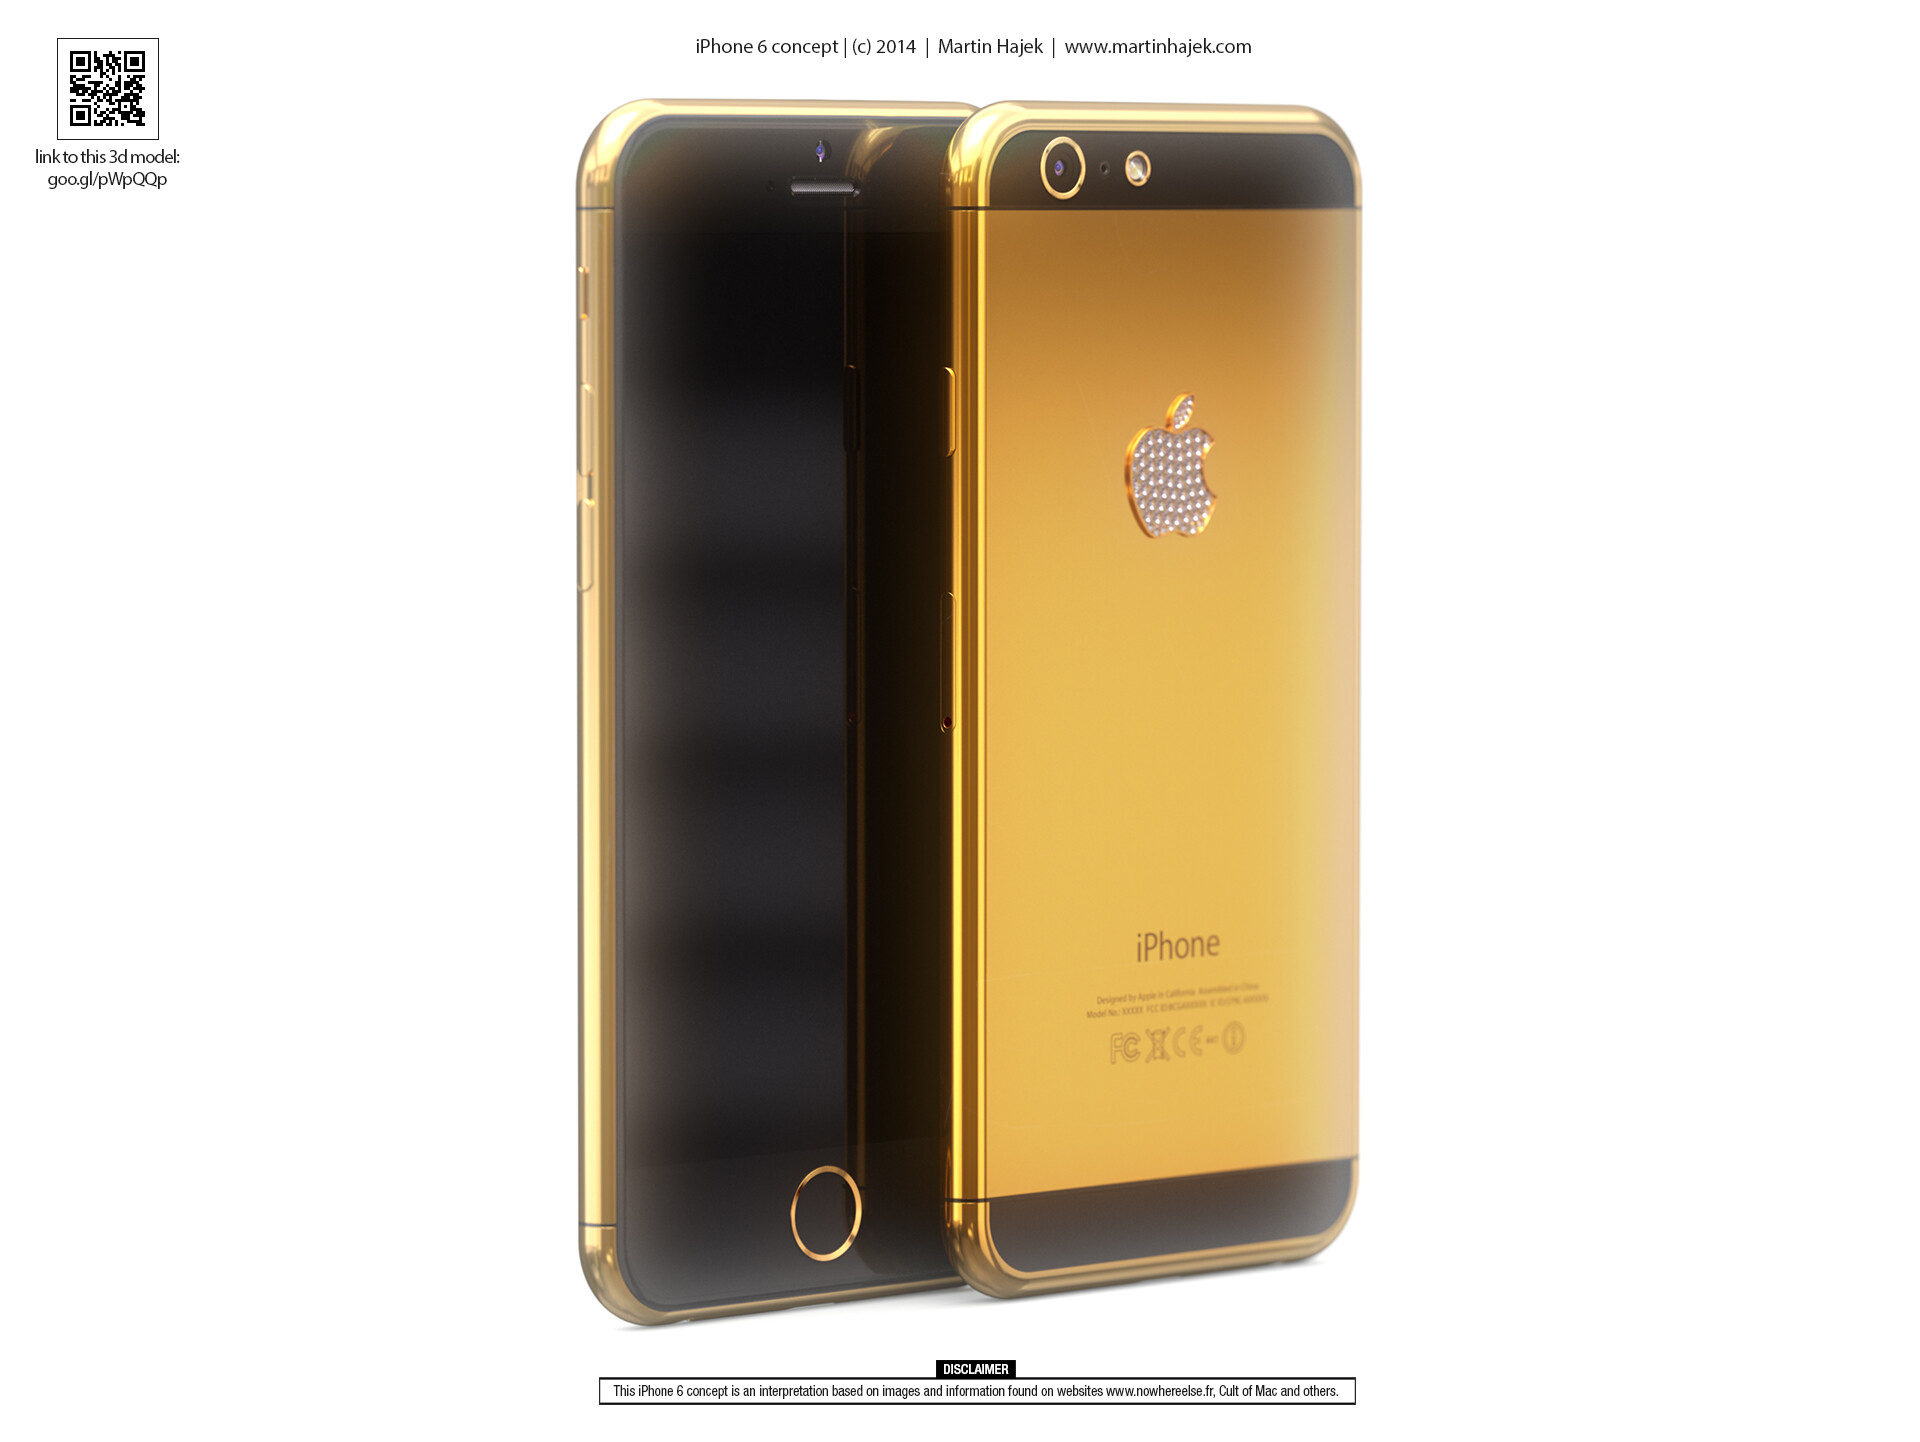 Concept: hereu0026#39;s what a luxury, gold-plated iPhone 6 may look like